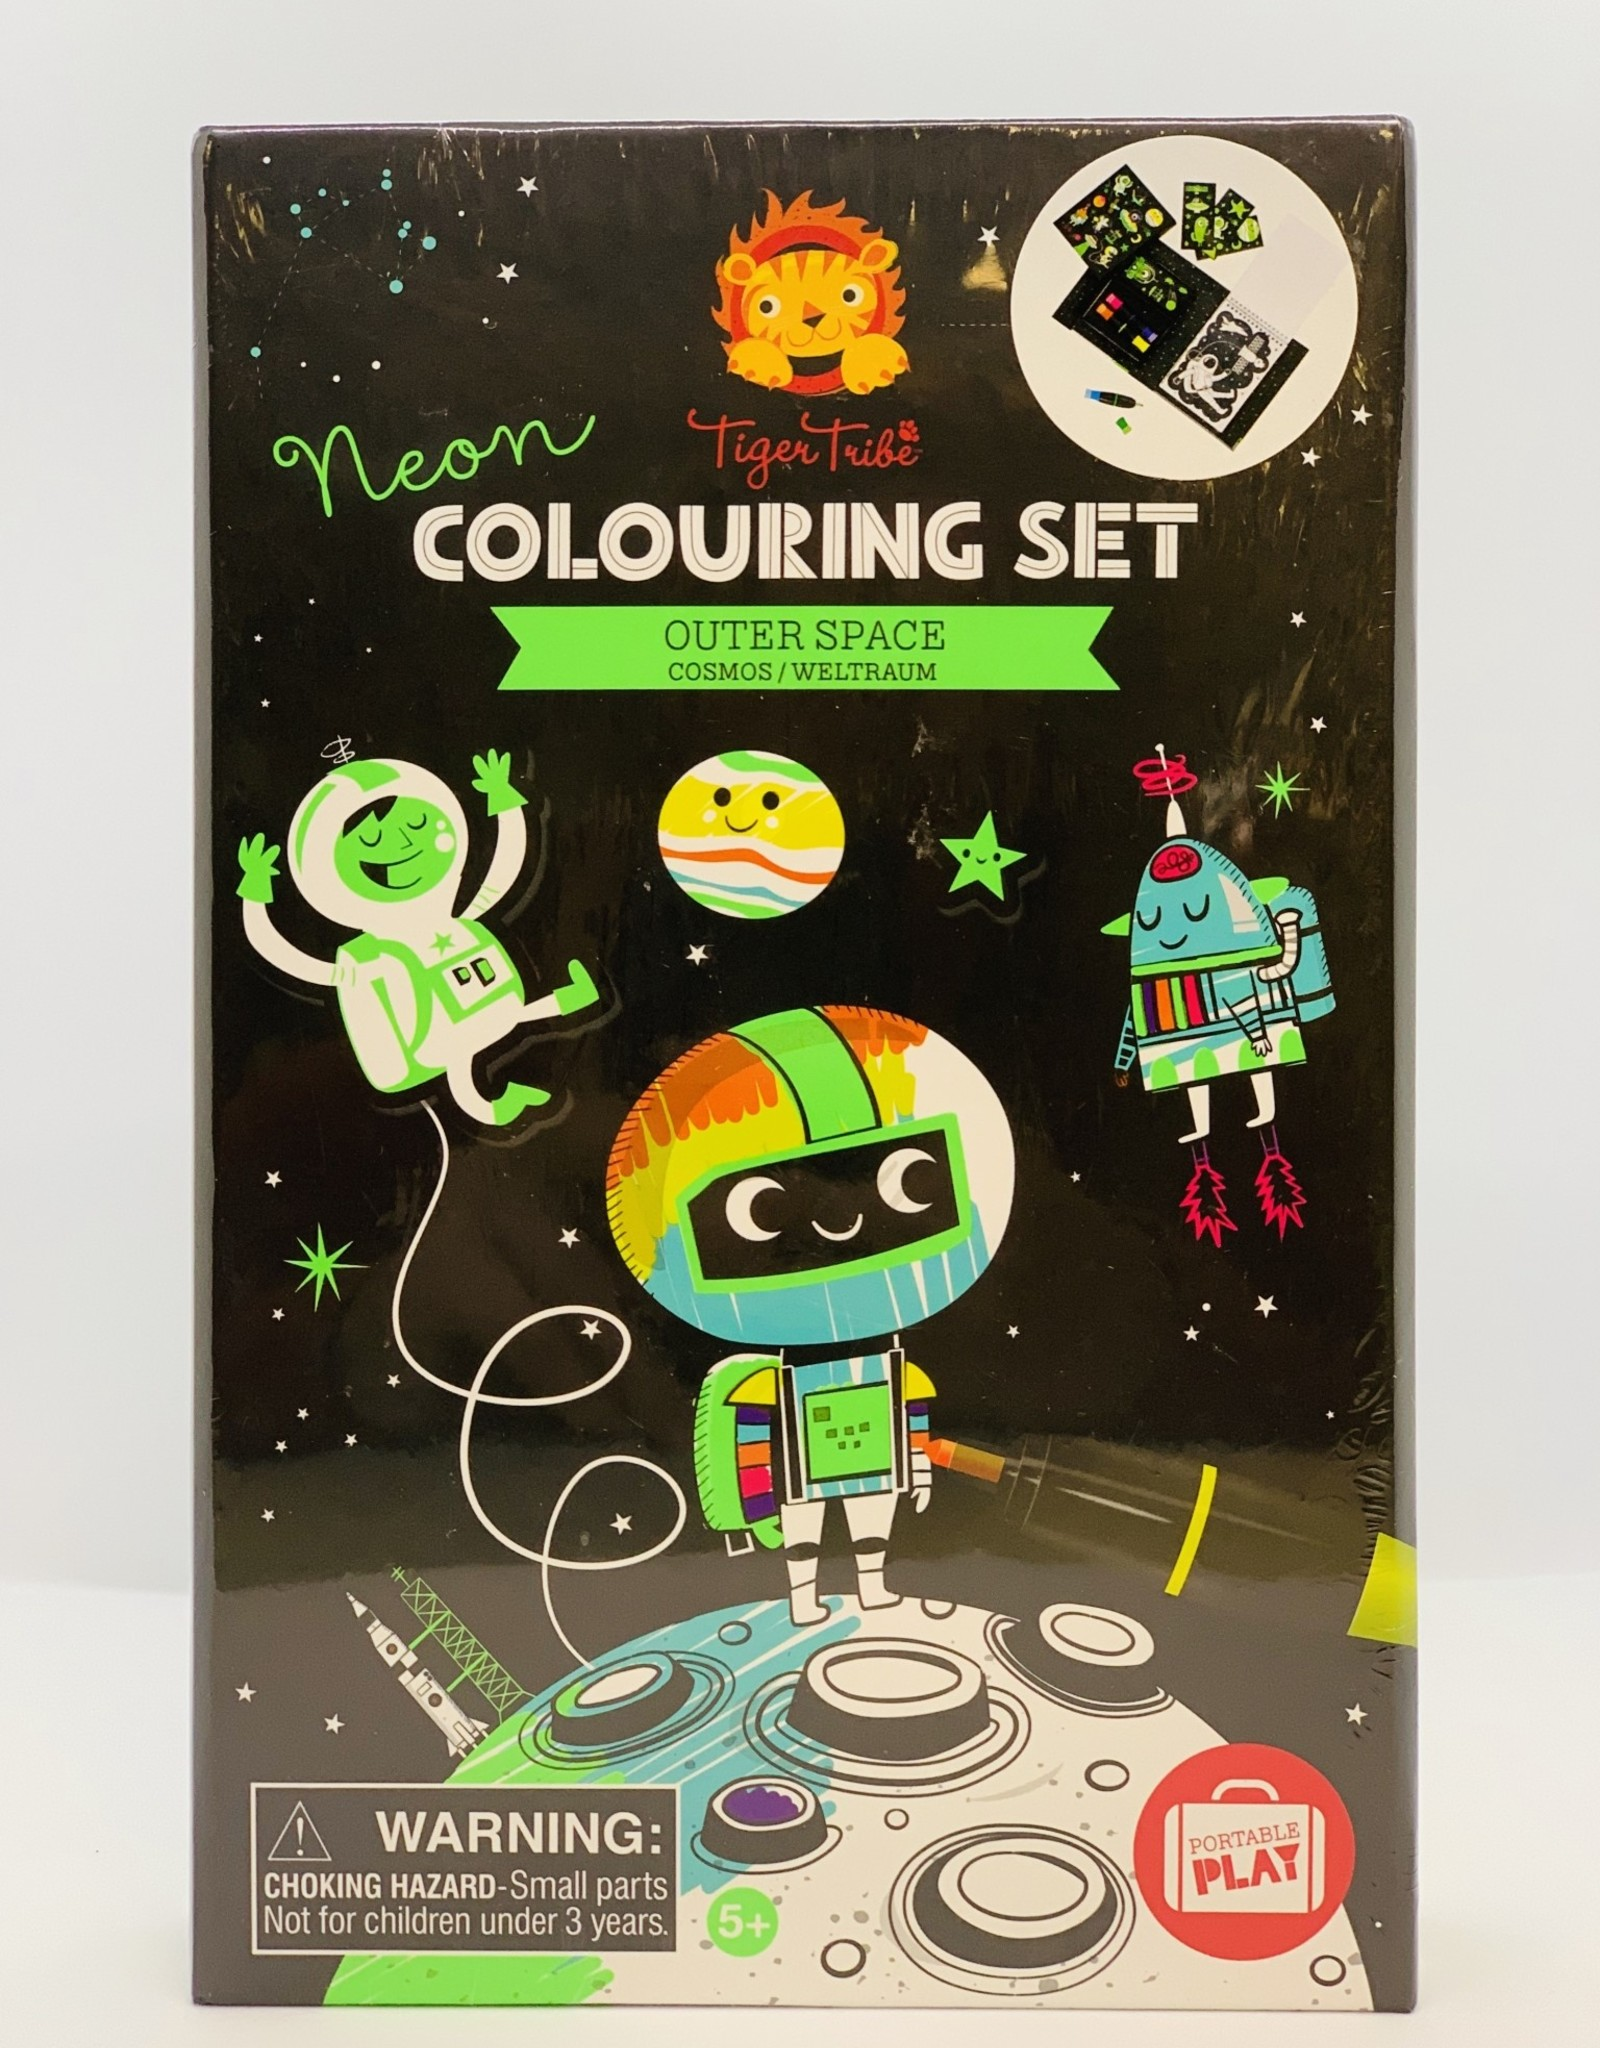 Tiger Tribe Neon Coloring Set - Outer Space